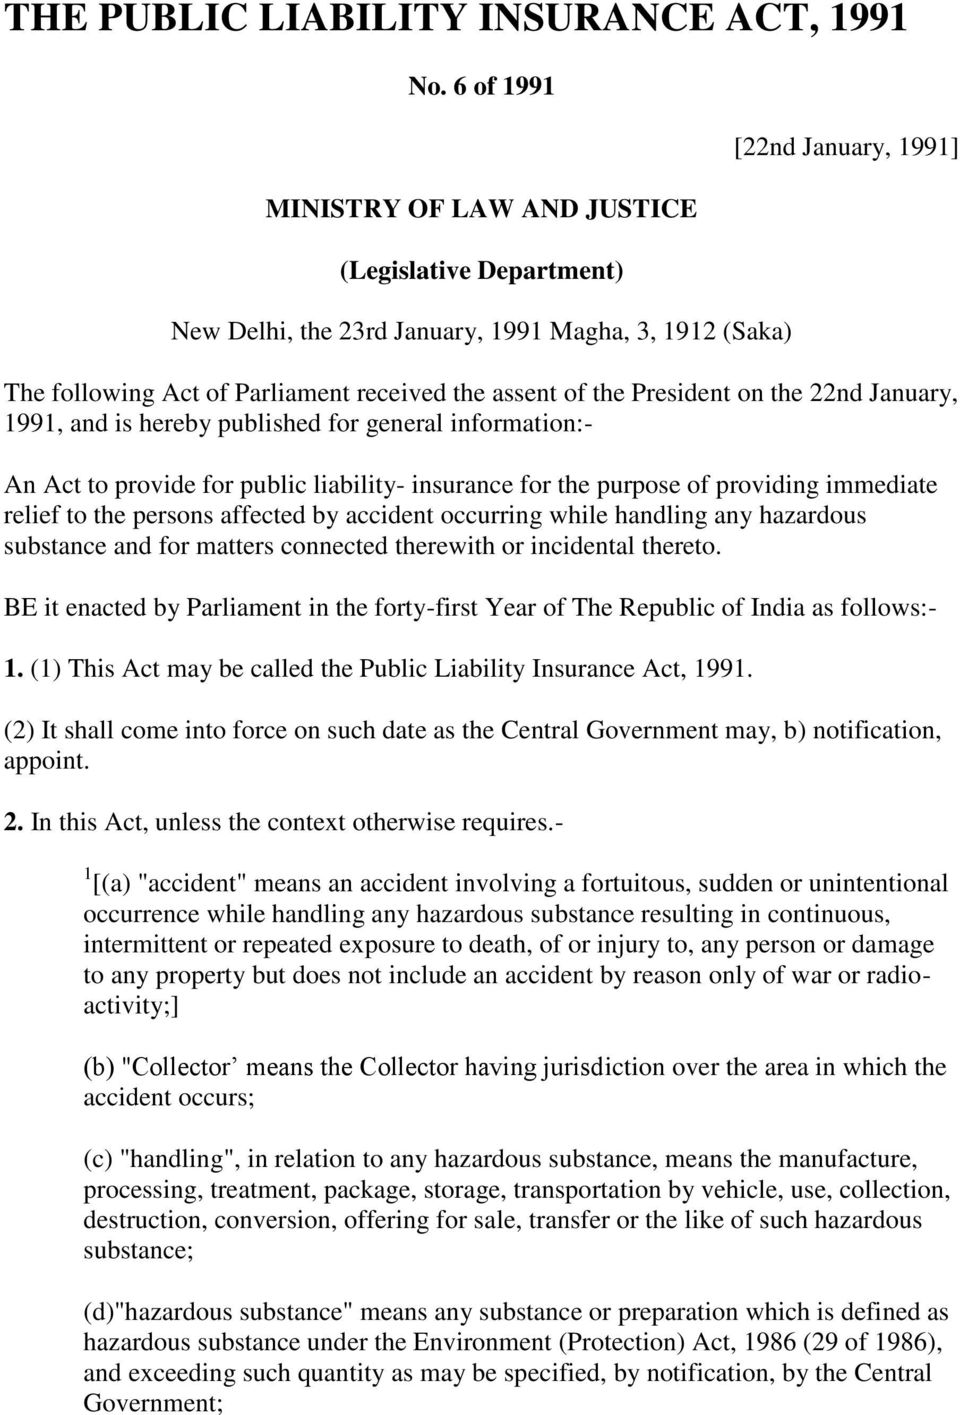 President on the 22nd January, 1991, and is hereby published for general information:- An Act to provide for public liability- insurance for the purpose of providing immediate relief to the persons